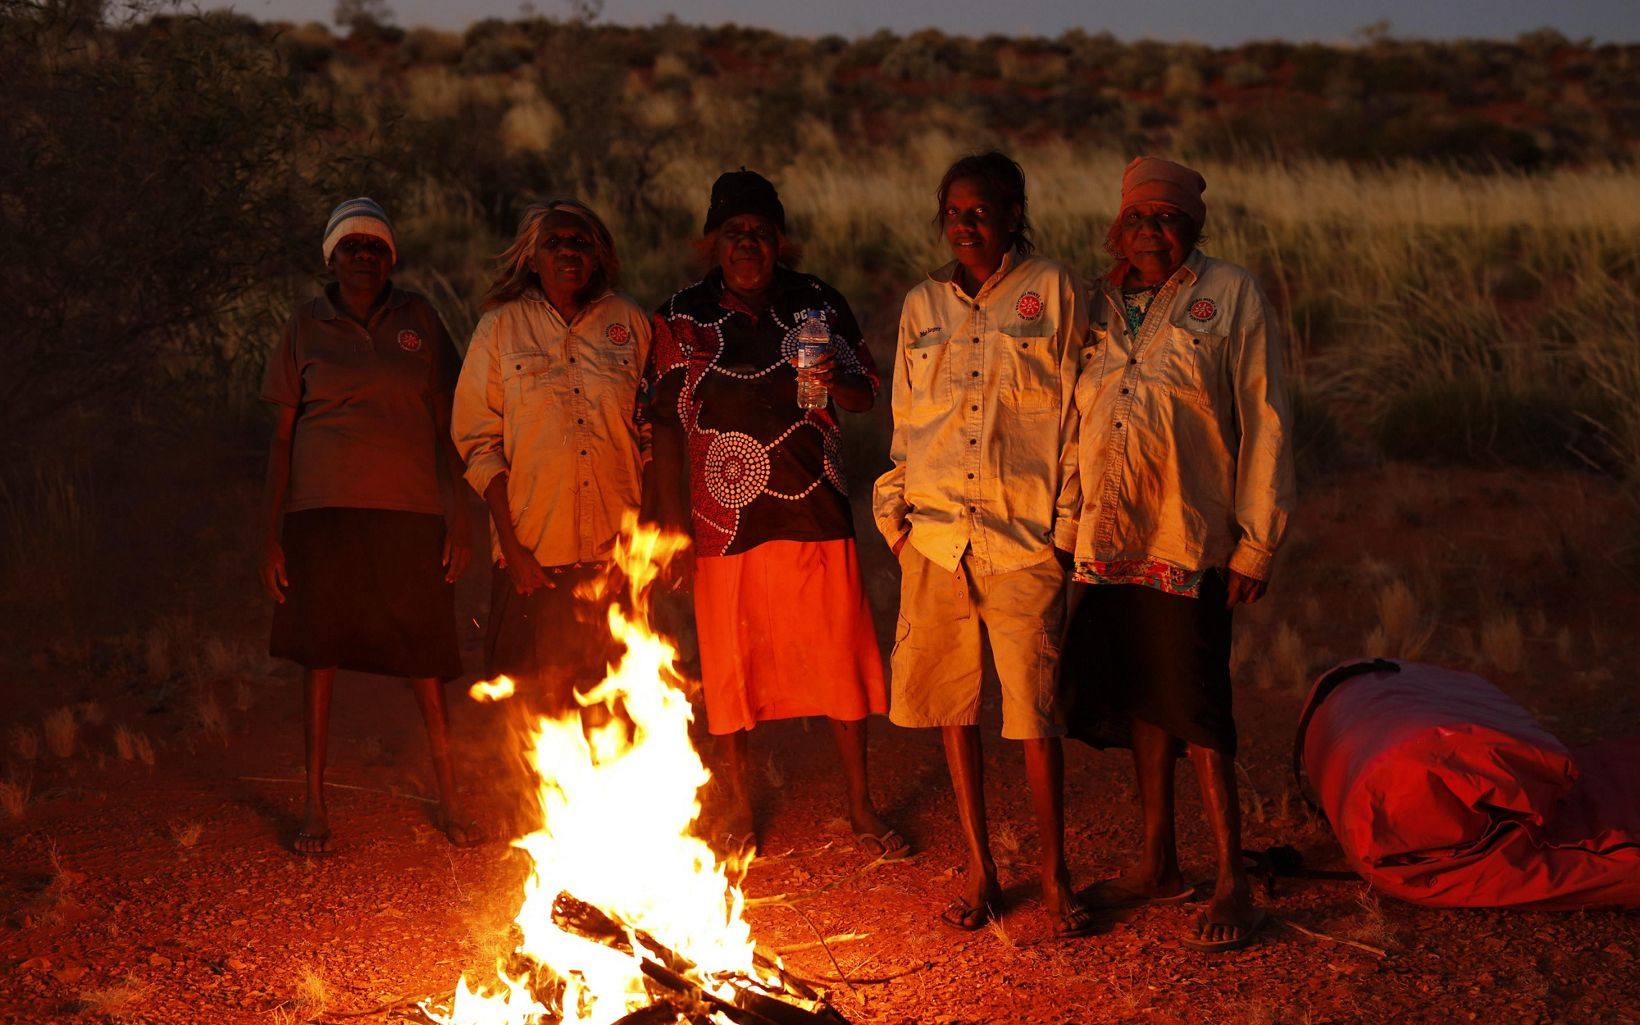 as important in camp today for these Martu women as it has been for thousands of years